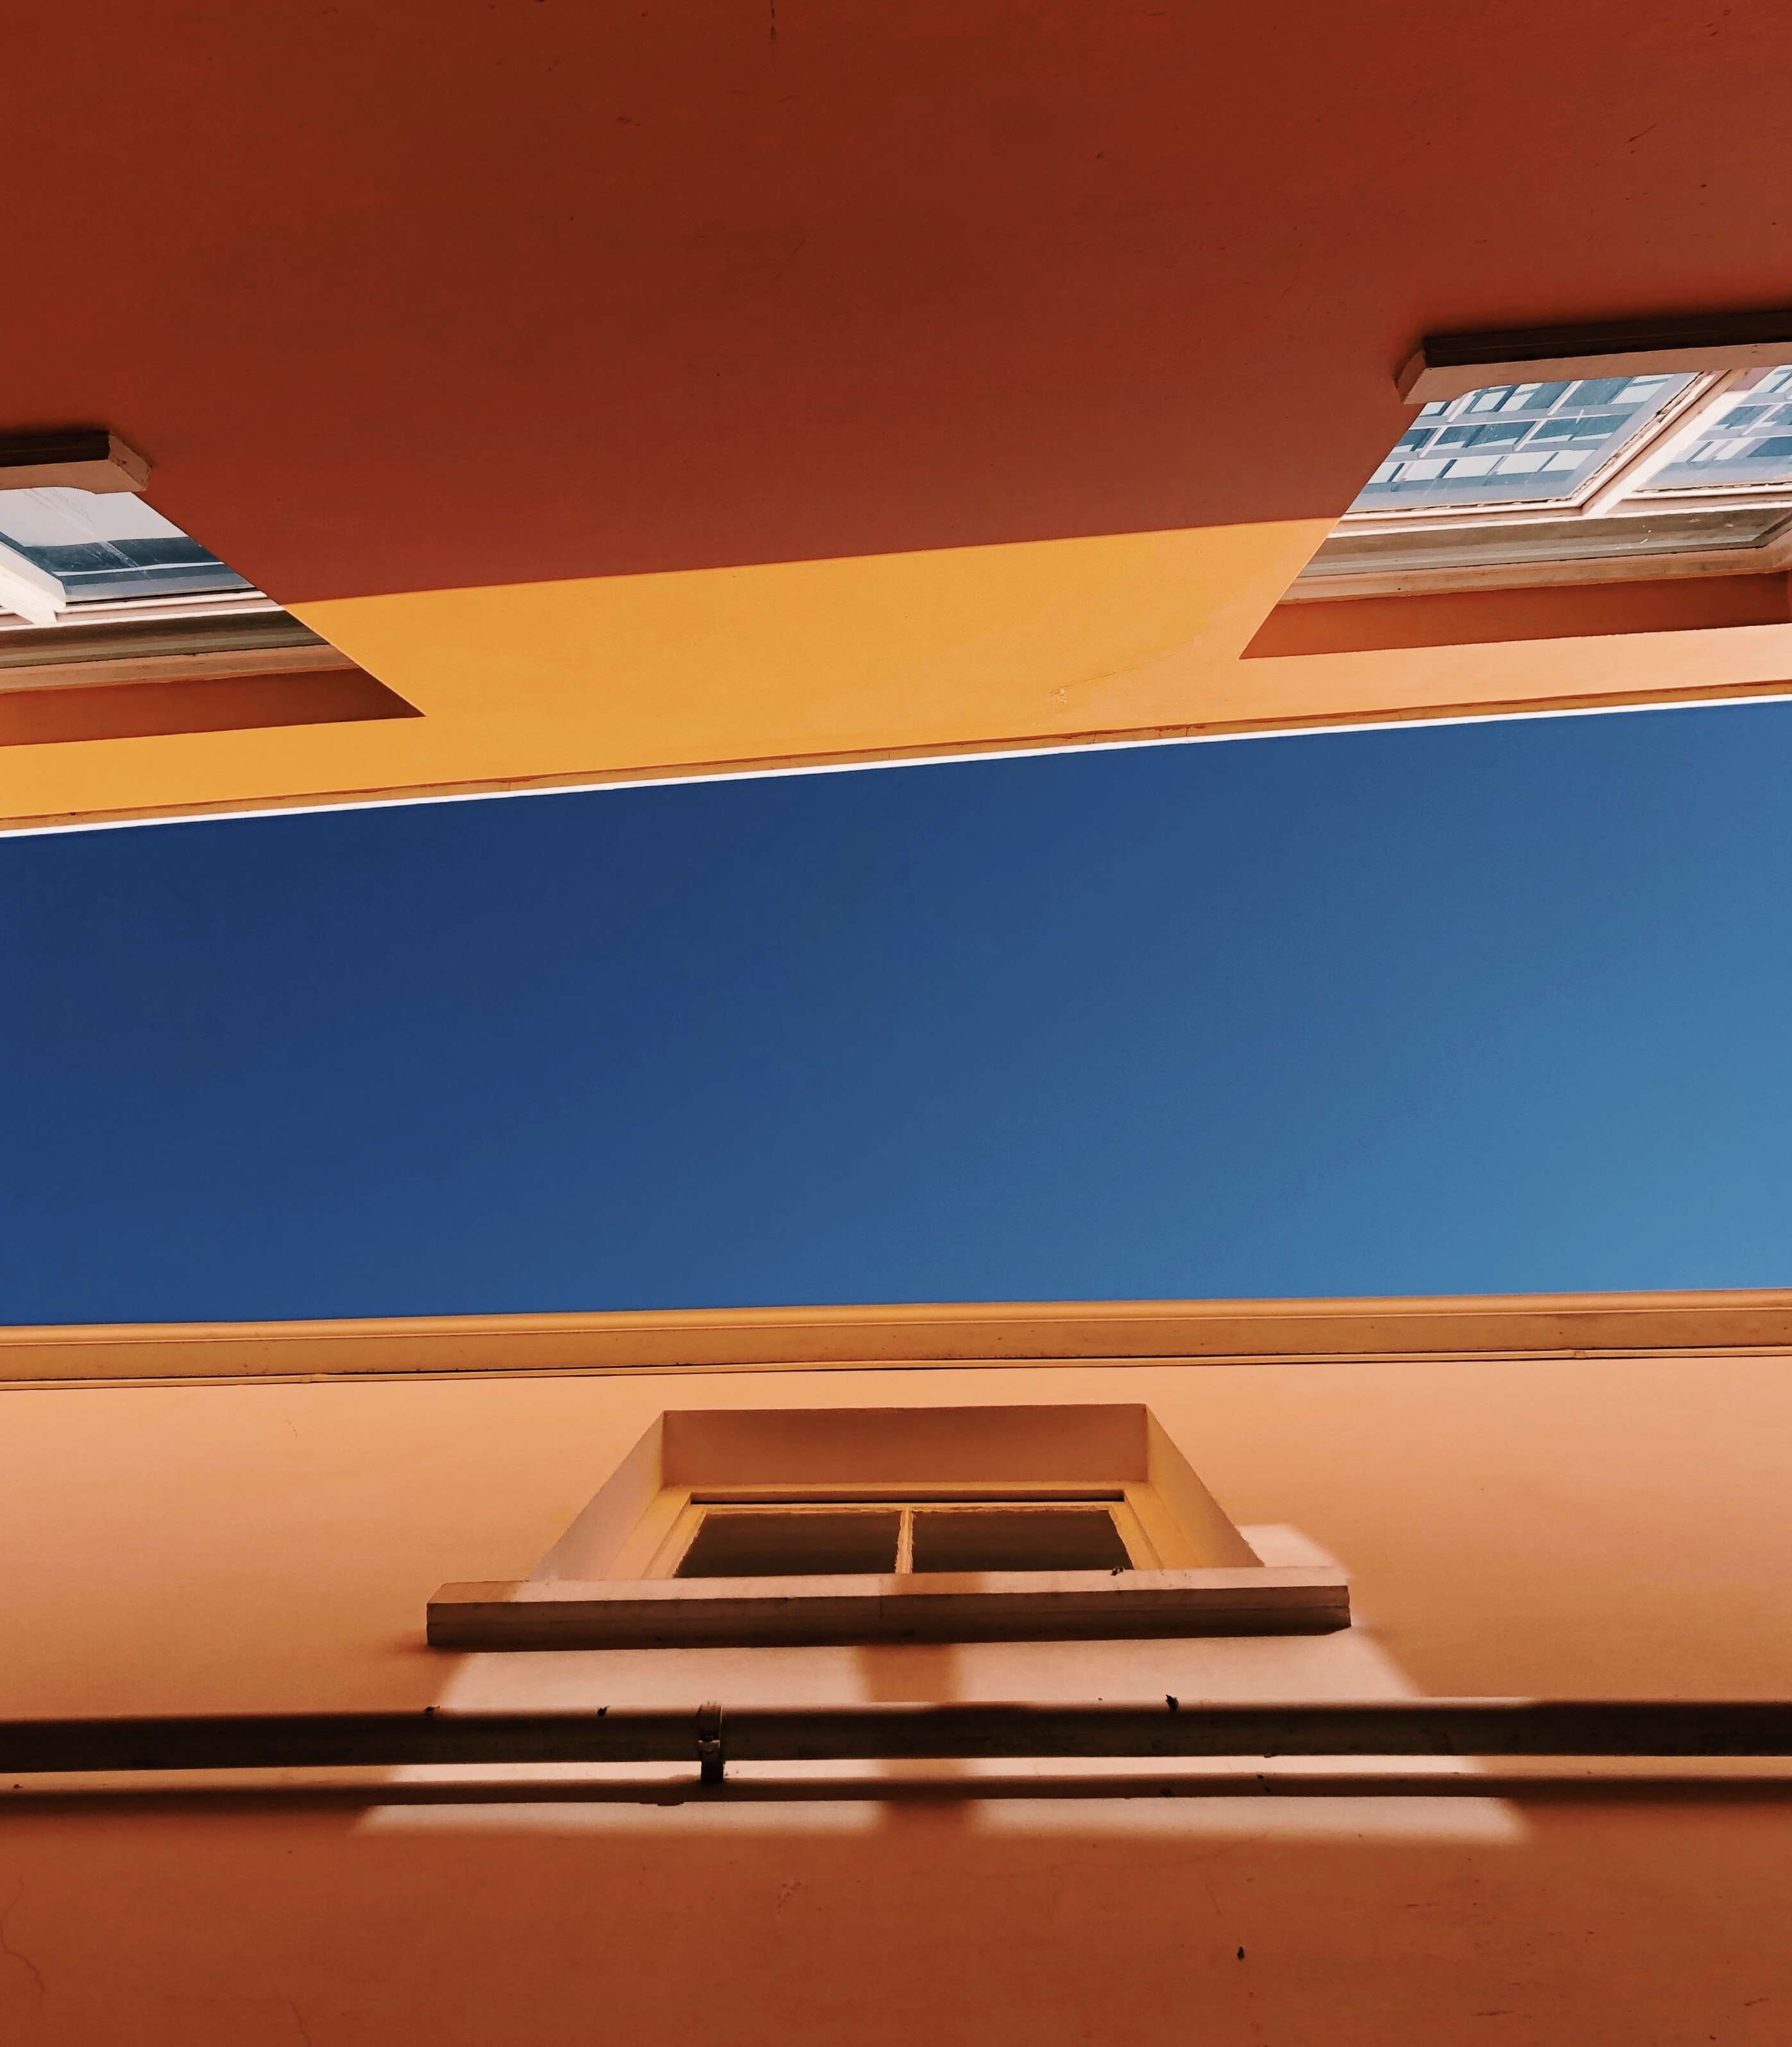 low-angle photography of brown concrete buildings under blue sky at daytime